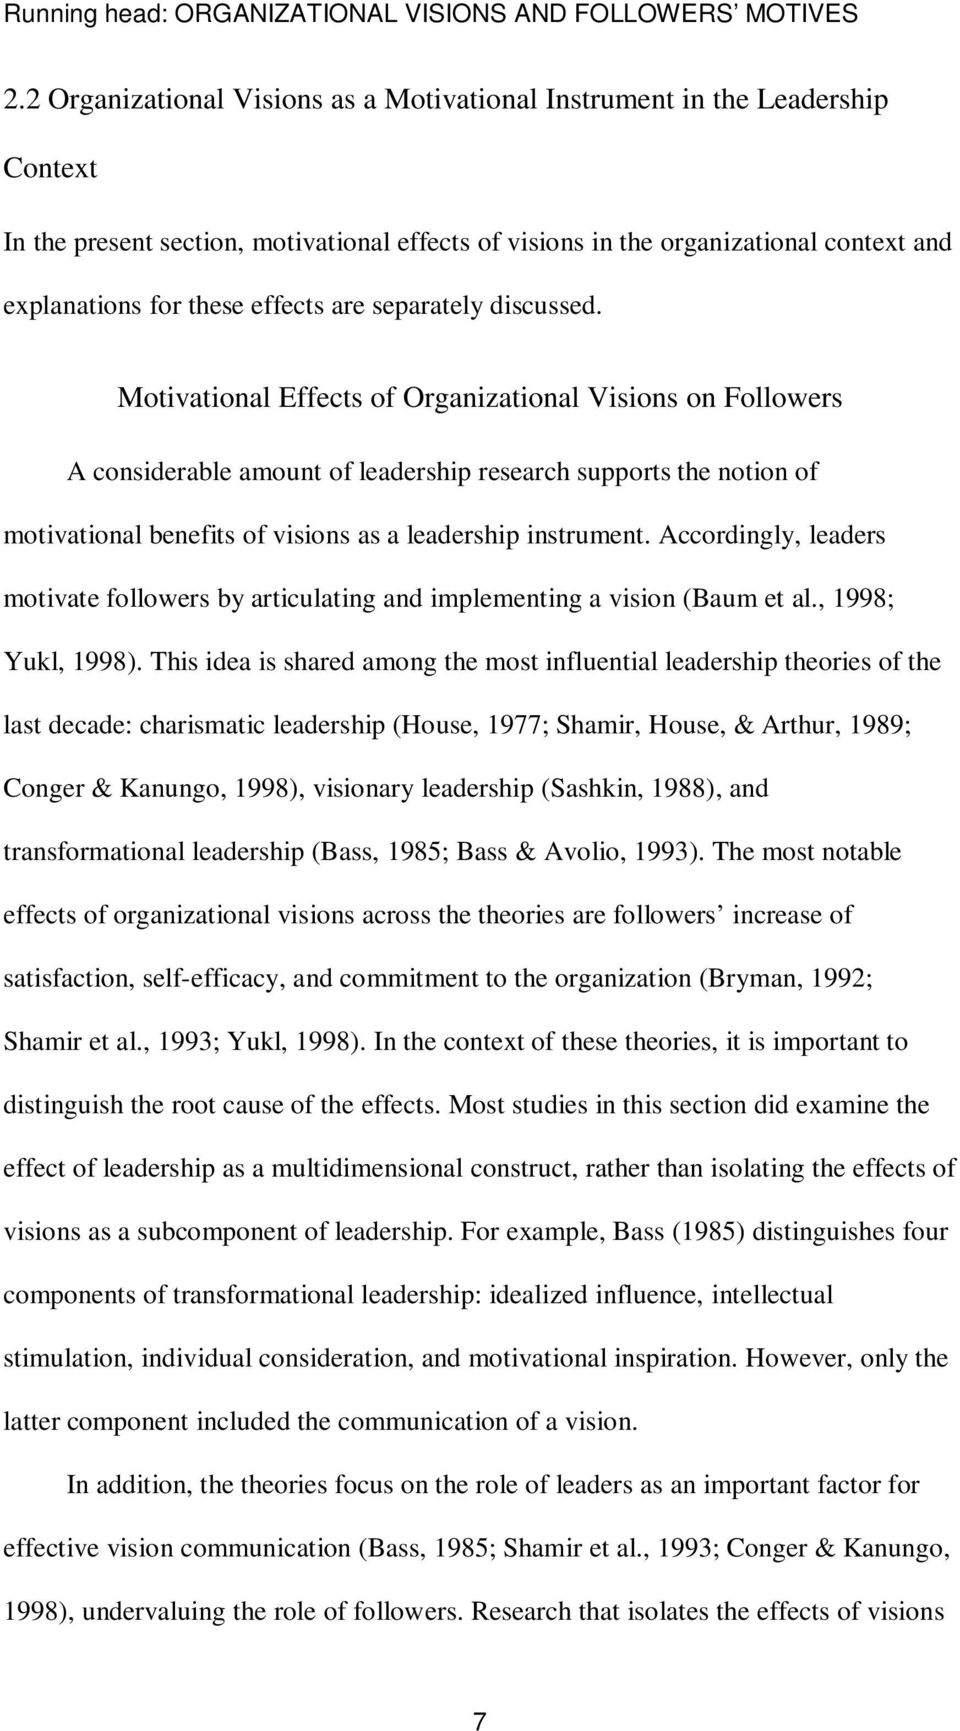 Motivational Effects of Organizational Visions on Followers A considerable amount of leadership research supports the notion of motivational benefits of visions as a leadership instrument.